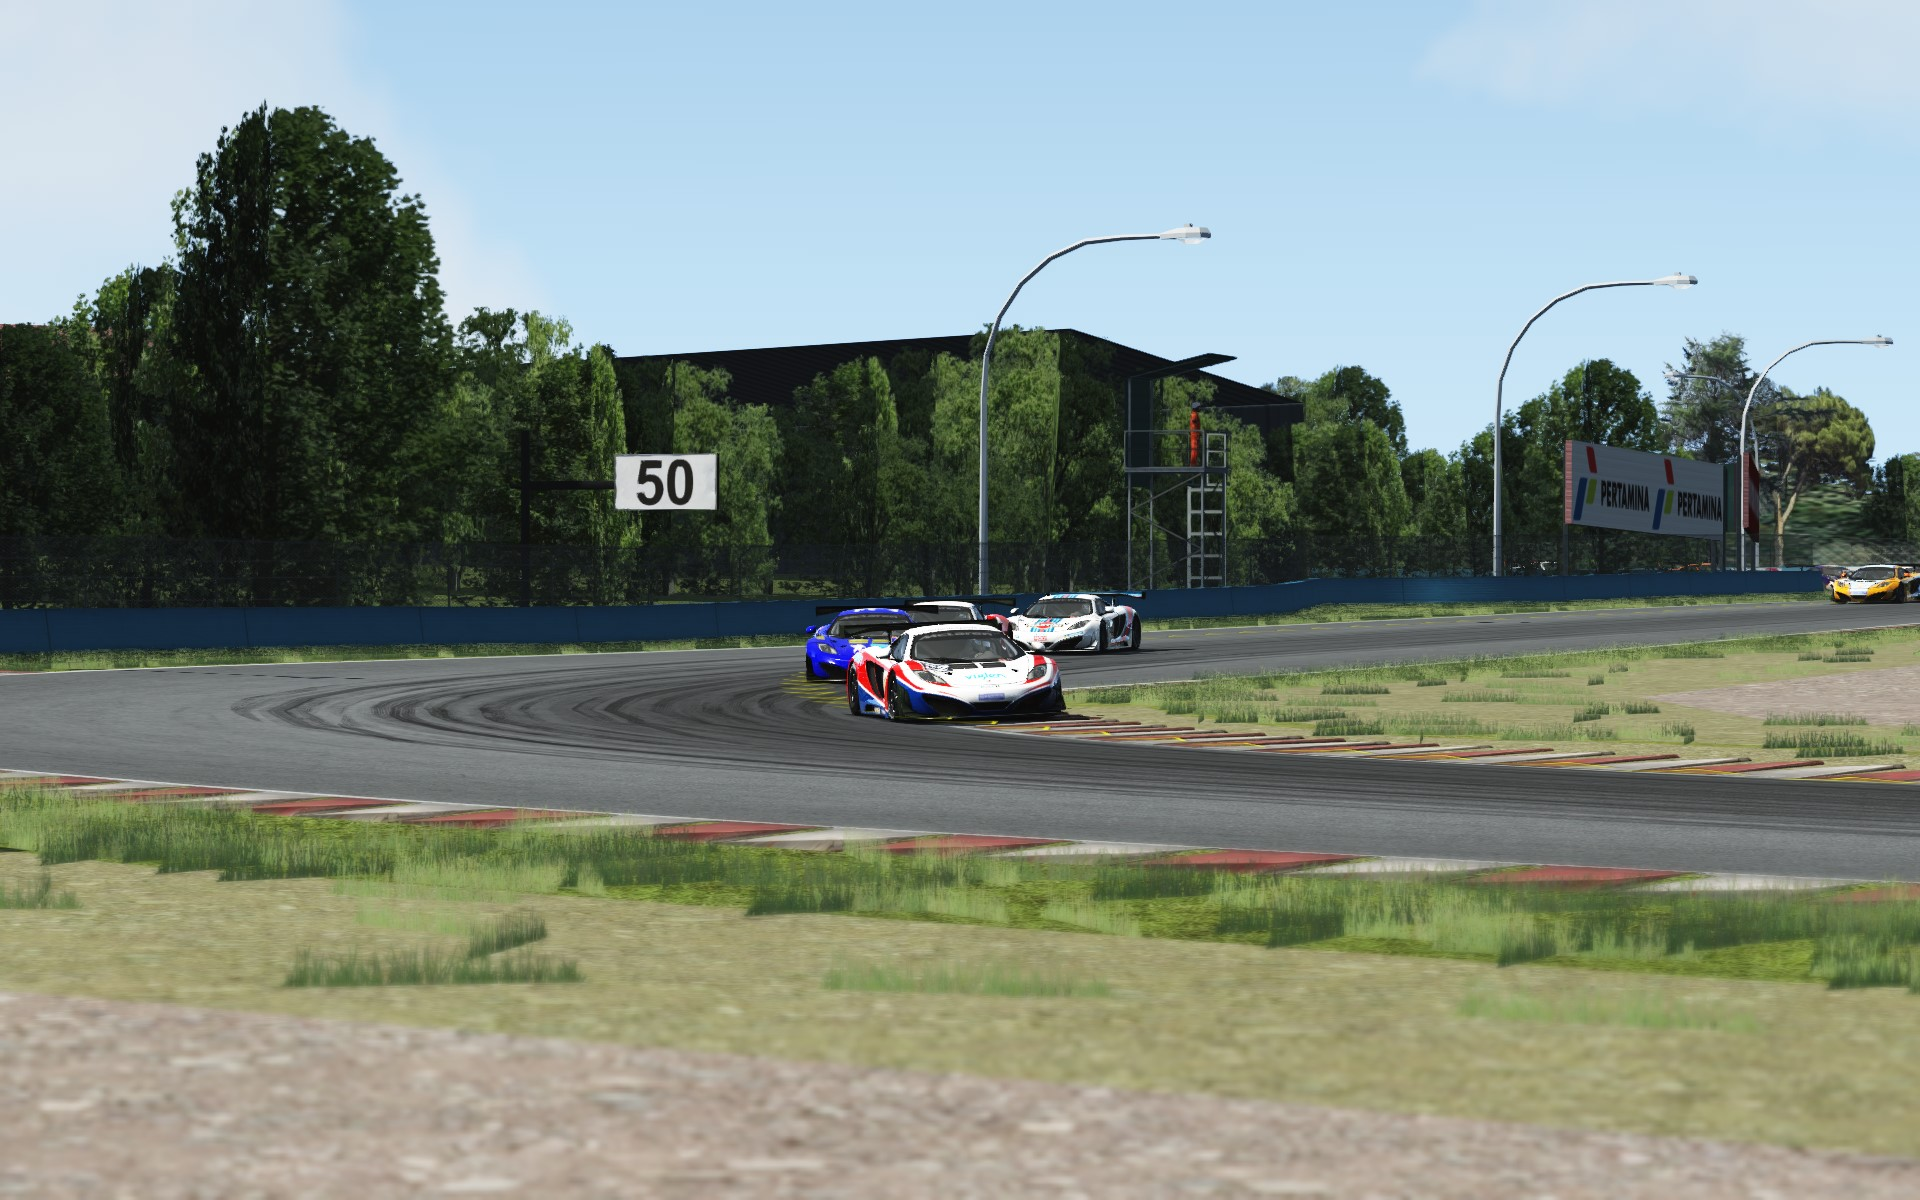 Screenshot_mclaren_mp412c_gt3_sentul_circuit_30-7-115-12-46-29.jpg